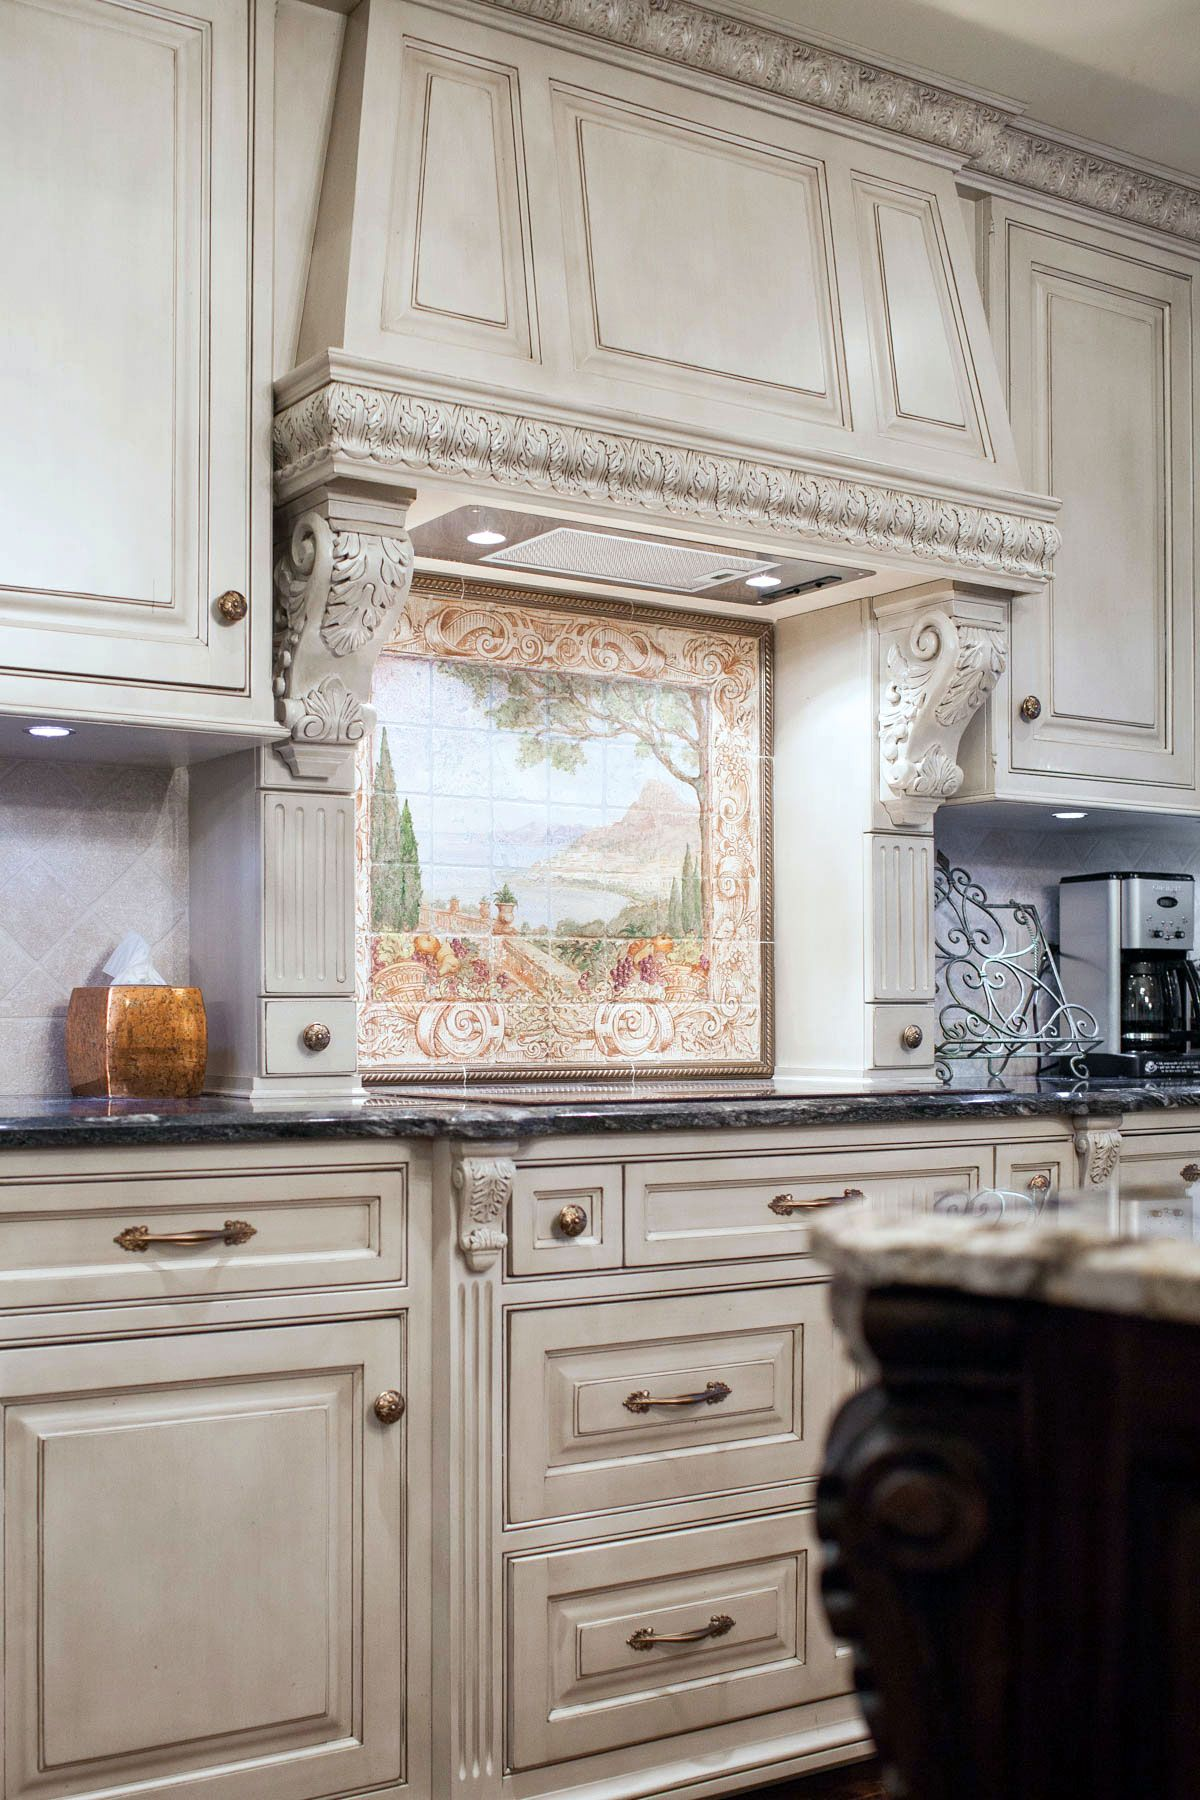 Kitchen bathroom remodeling projects kitchens and decor